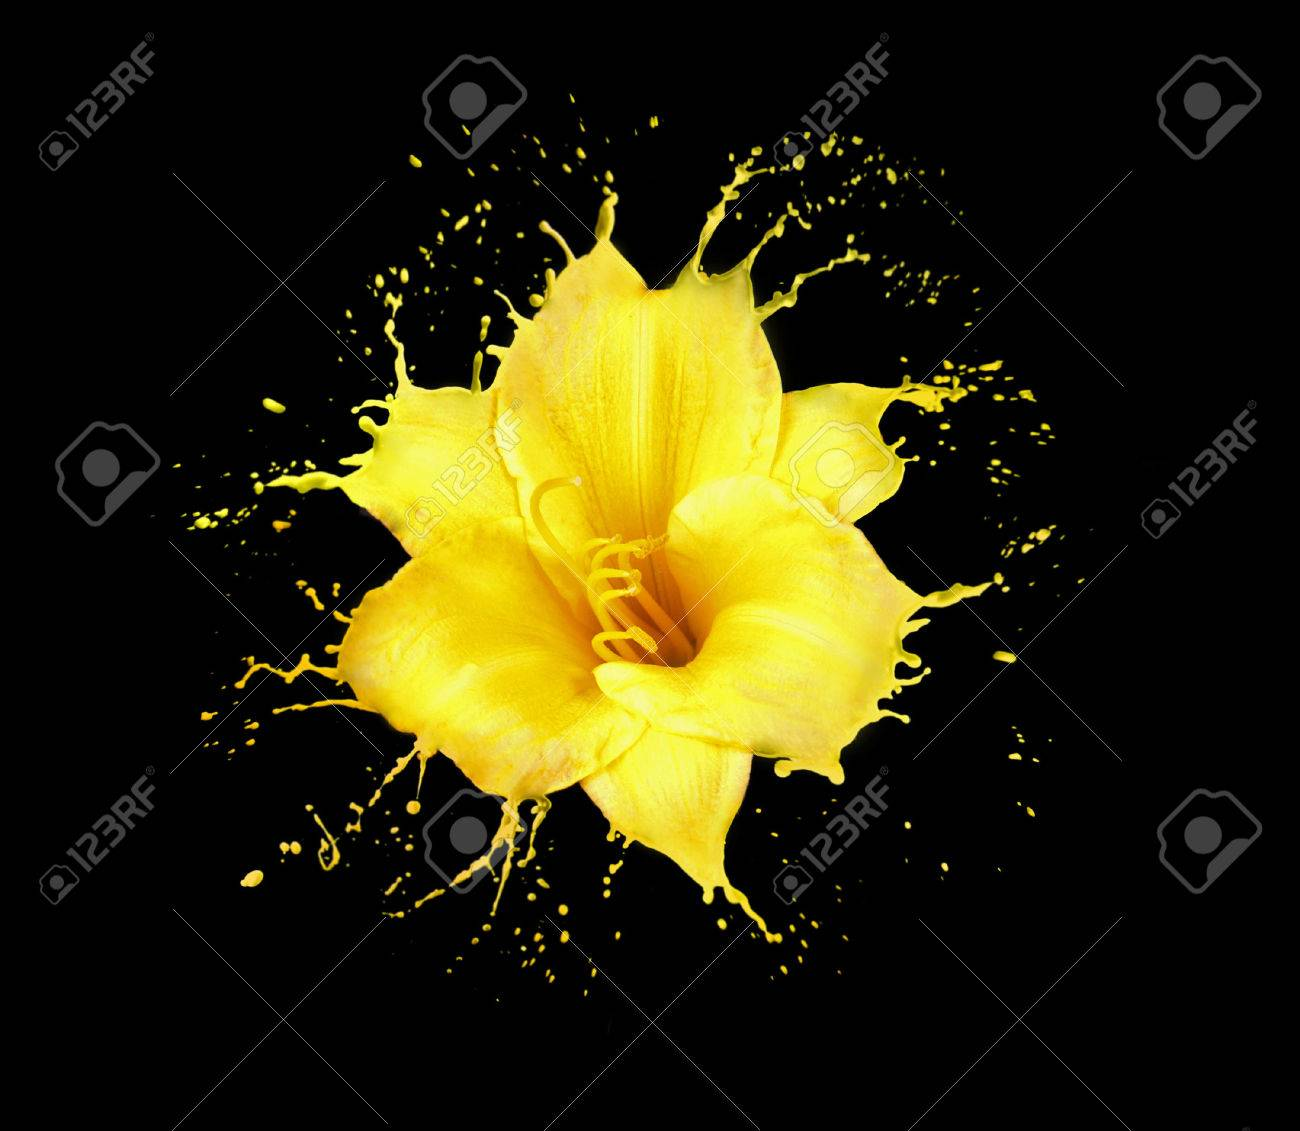 bright flower with yellow splashes on black background - 55431201